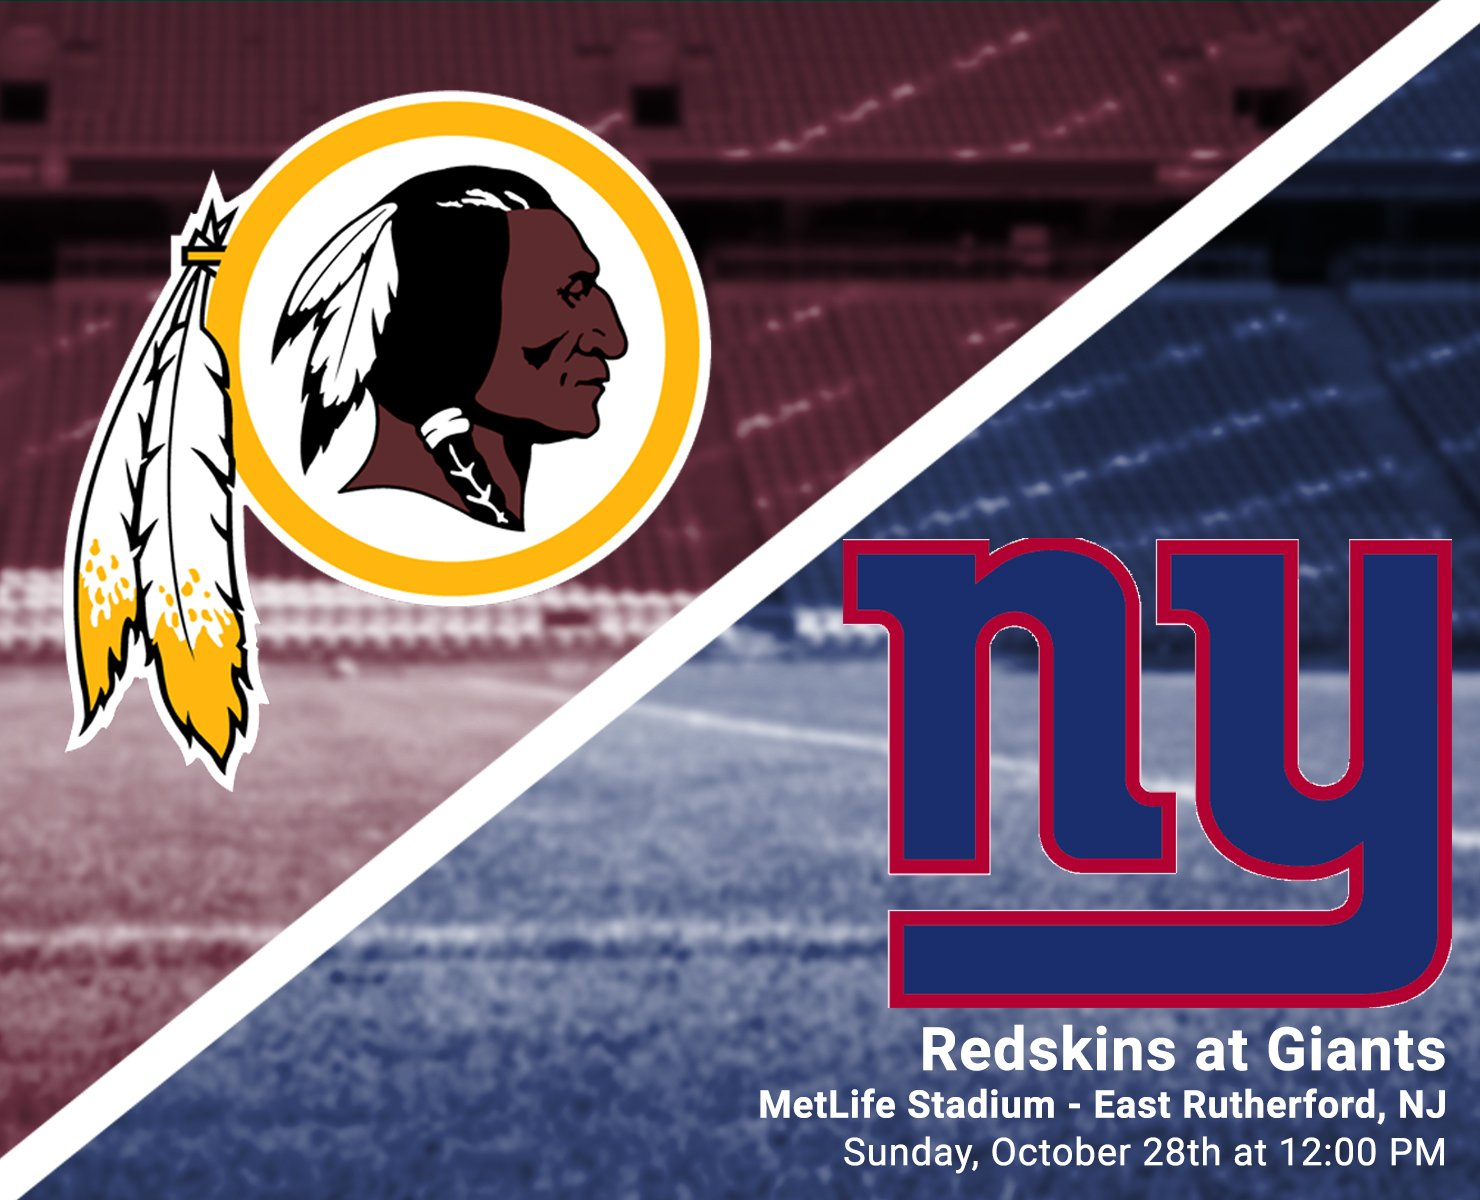 Giants-Redskins-Tickets-Oct-28-2018-8595